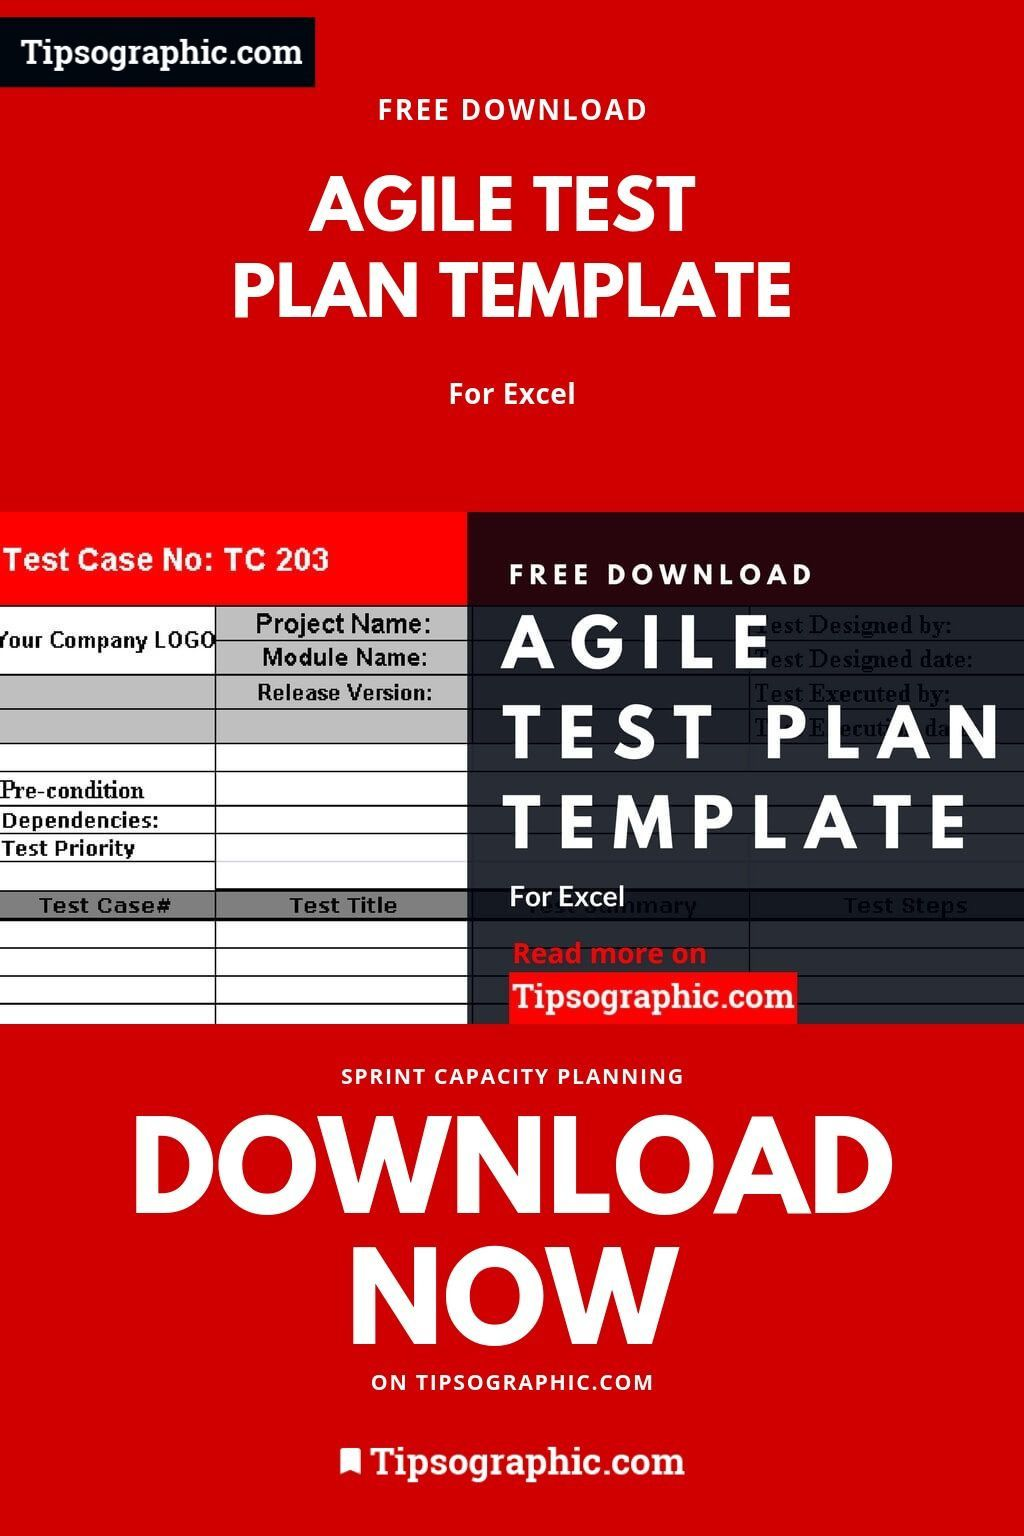 002 Staggering Agile Test Plan Template Sample  Word Example DocumentFull